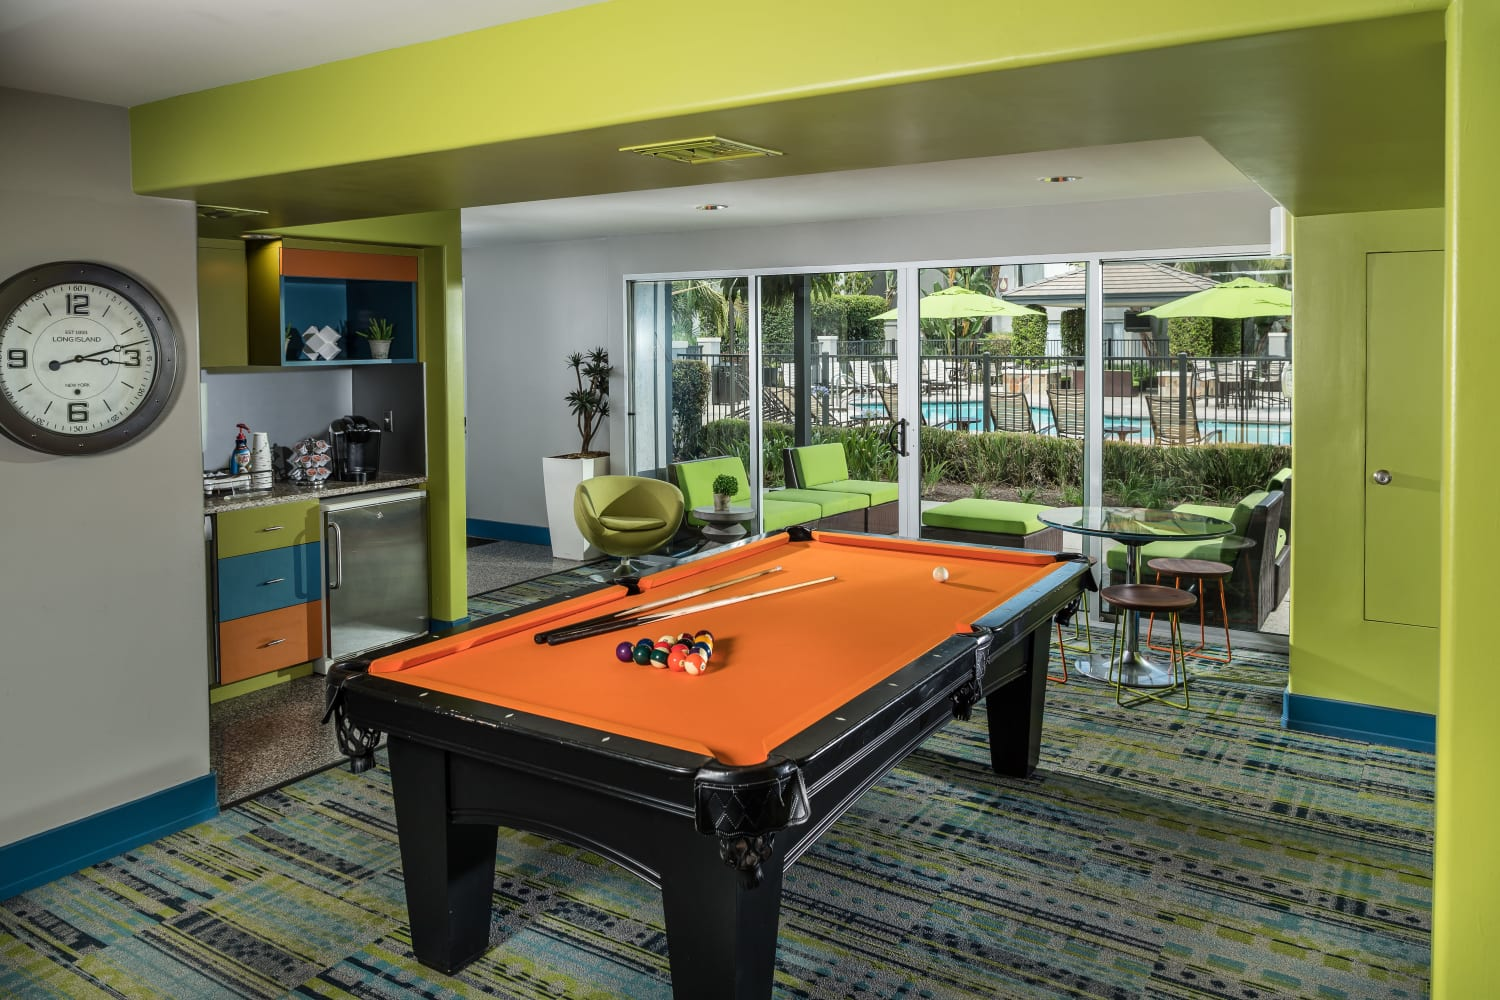 UCE Apartment Homes in Fullerton, California, offers a pool table in the community clubhouse